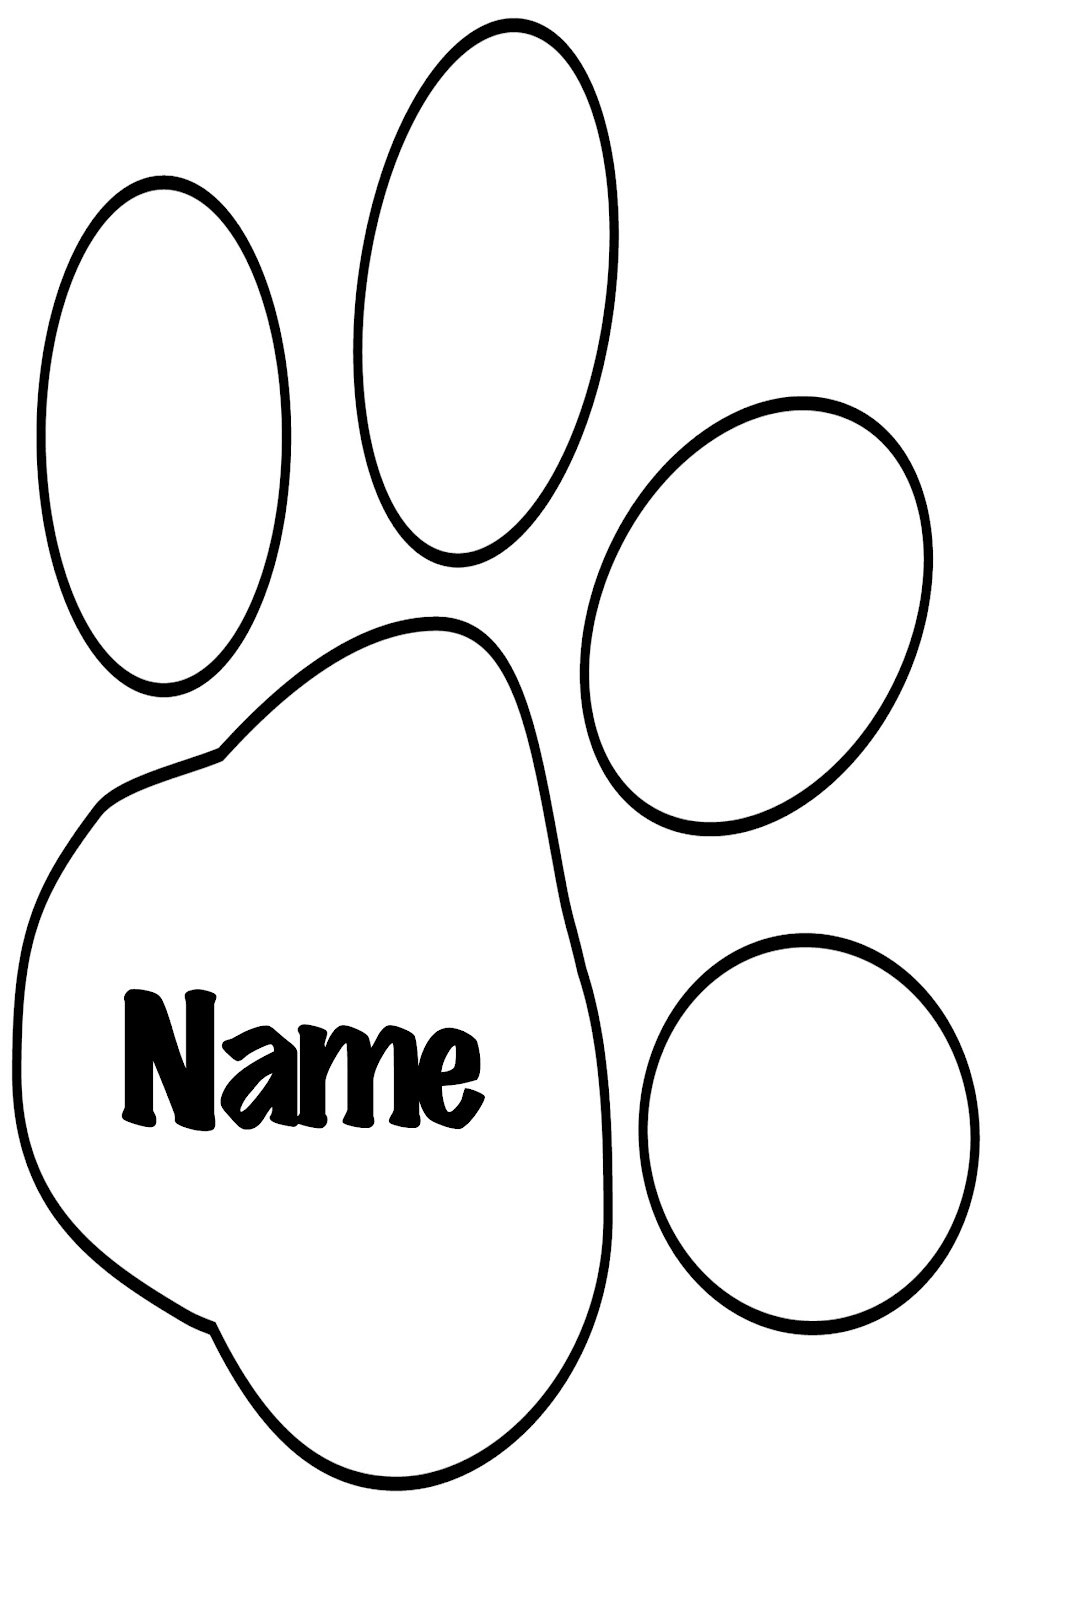 Paw Print Template Search Results Calendar 2015 Paw Print Coloring Pages